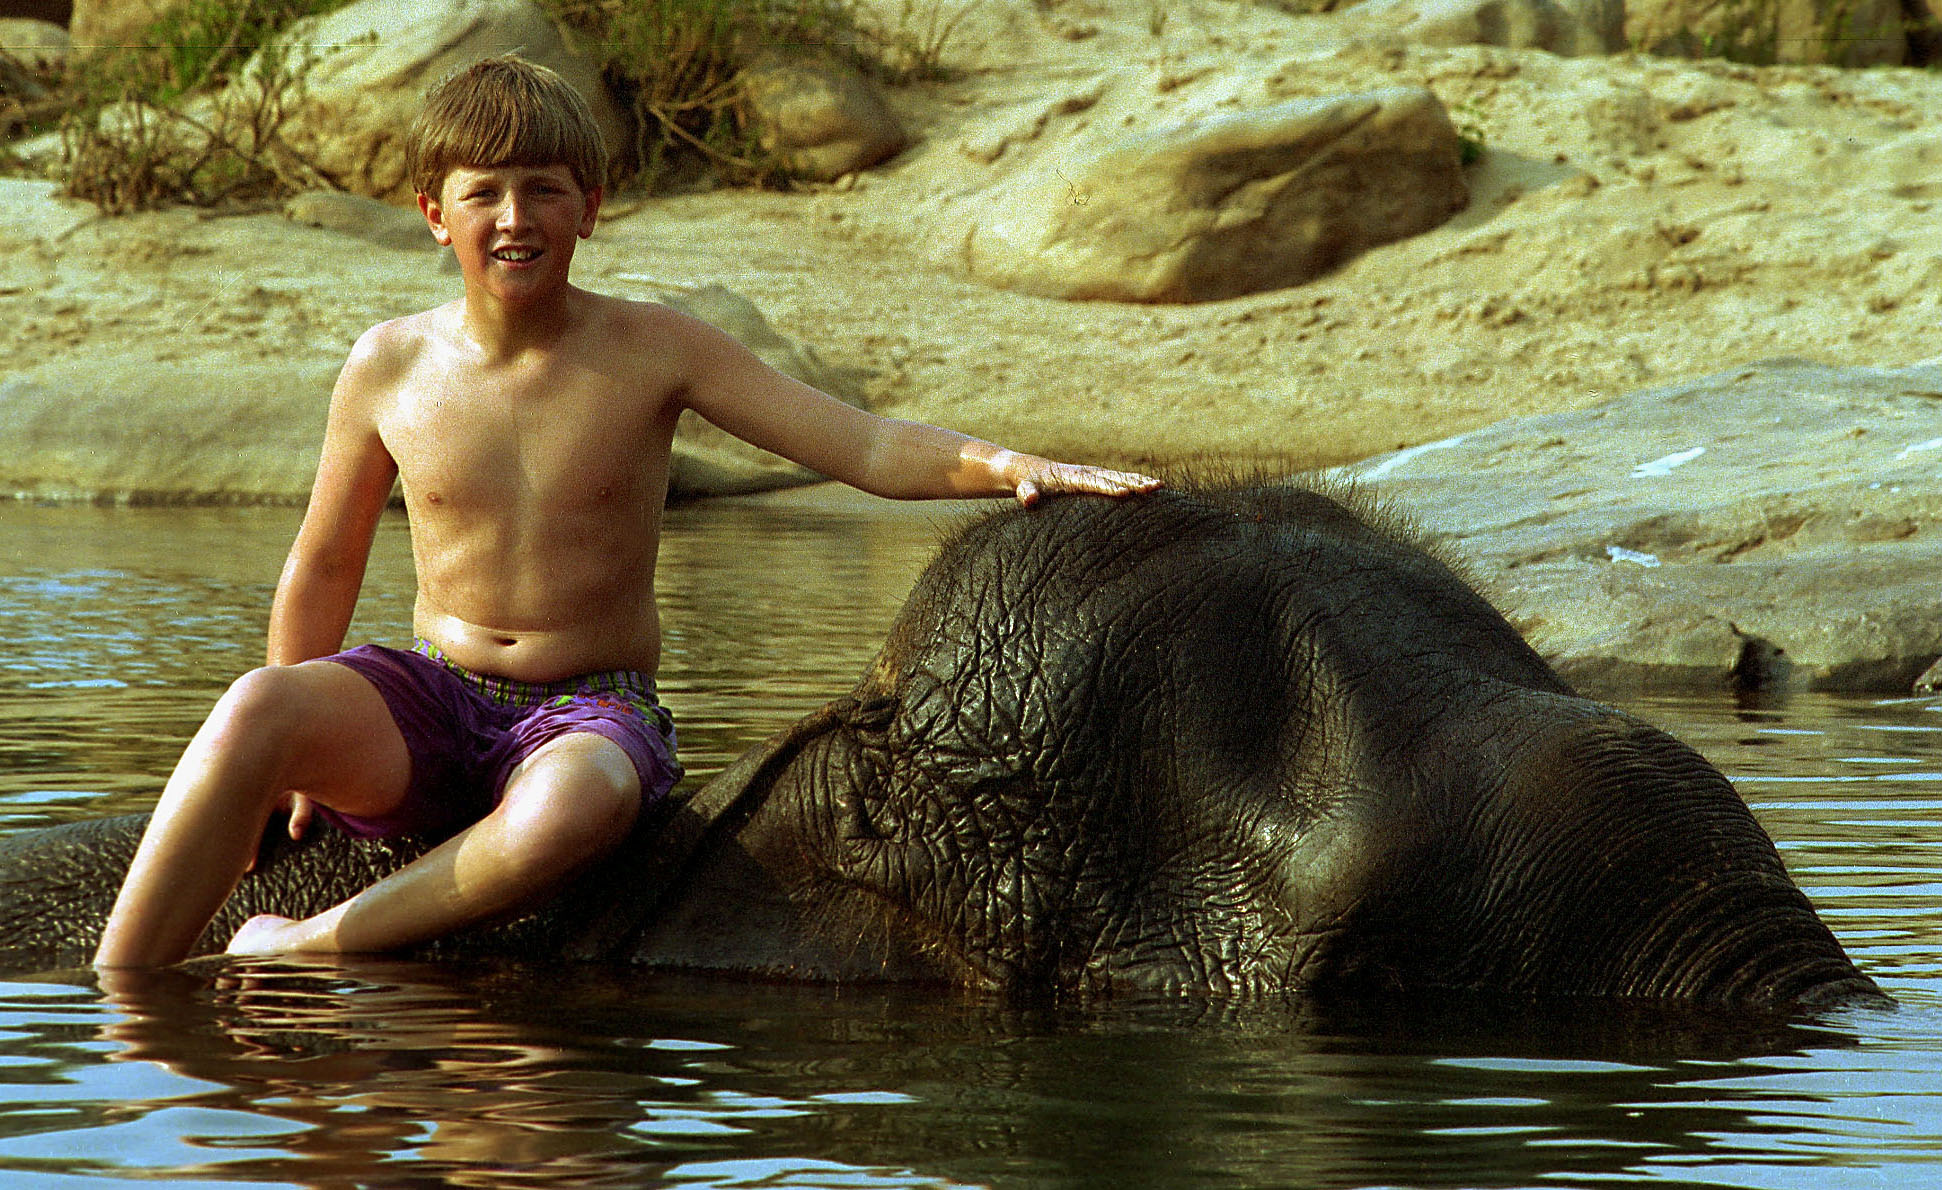 Geoff Whittle - India Jamie bathing elephant, Kanha N.P. 1997